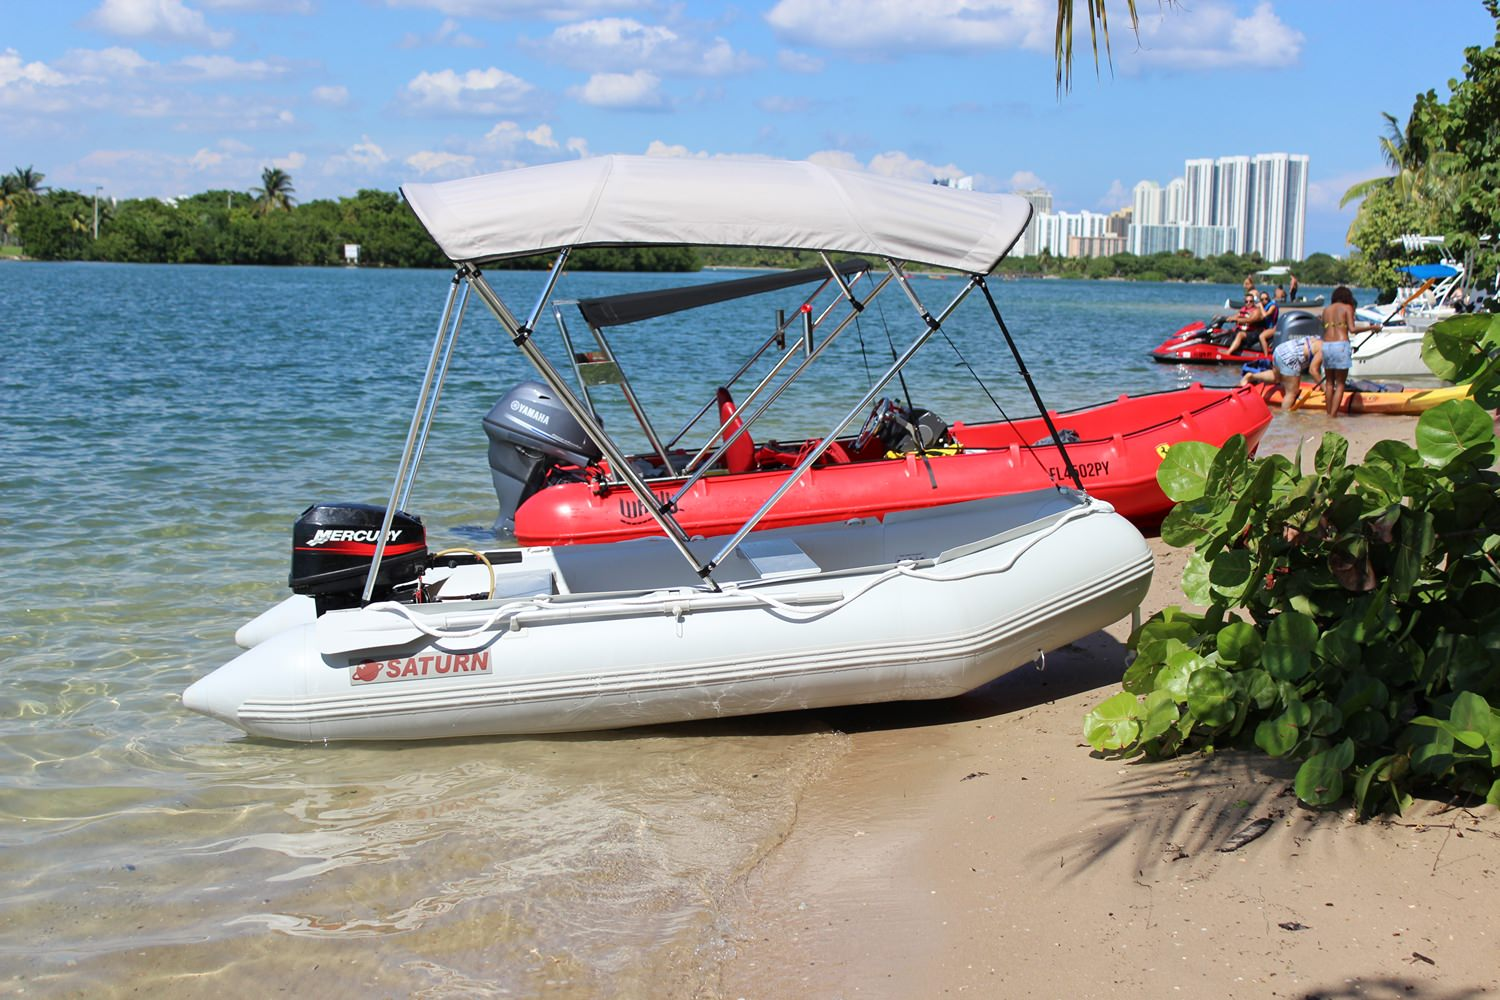 Images of Saturn Inflatable Boats - #rock-cafe